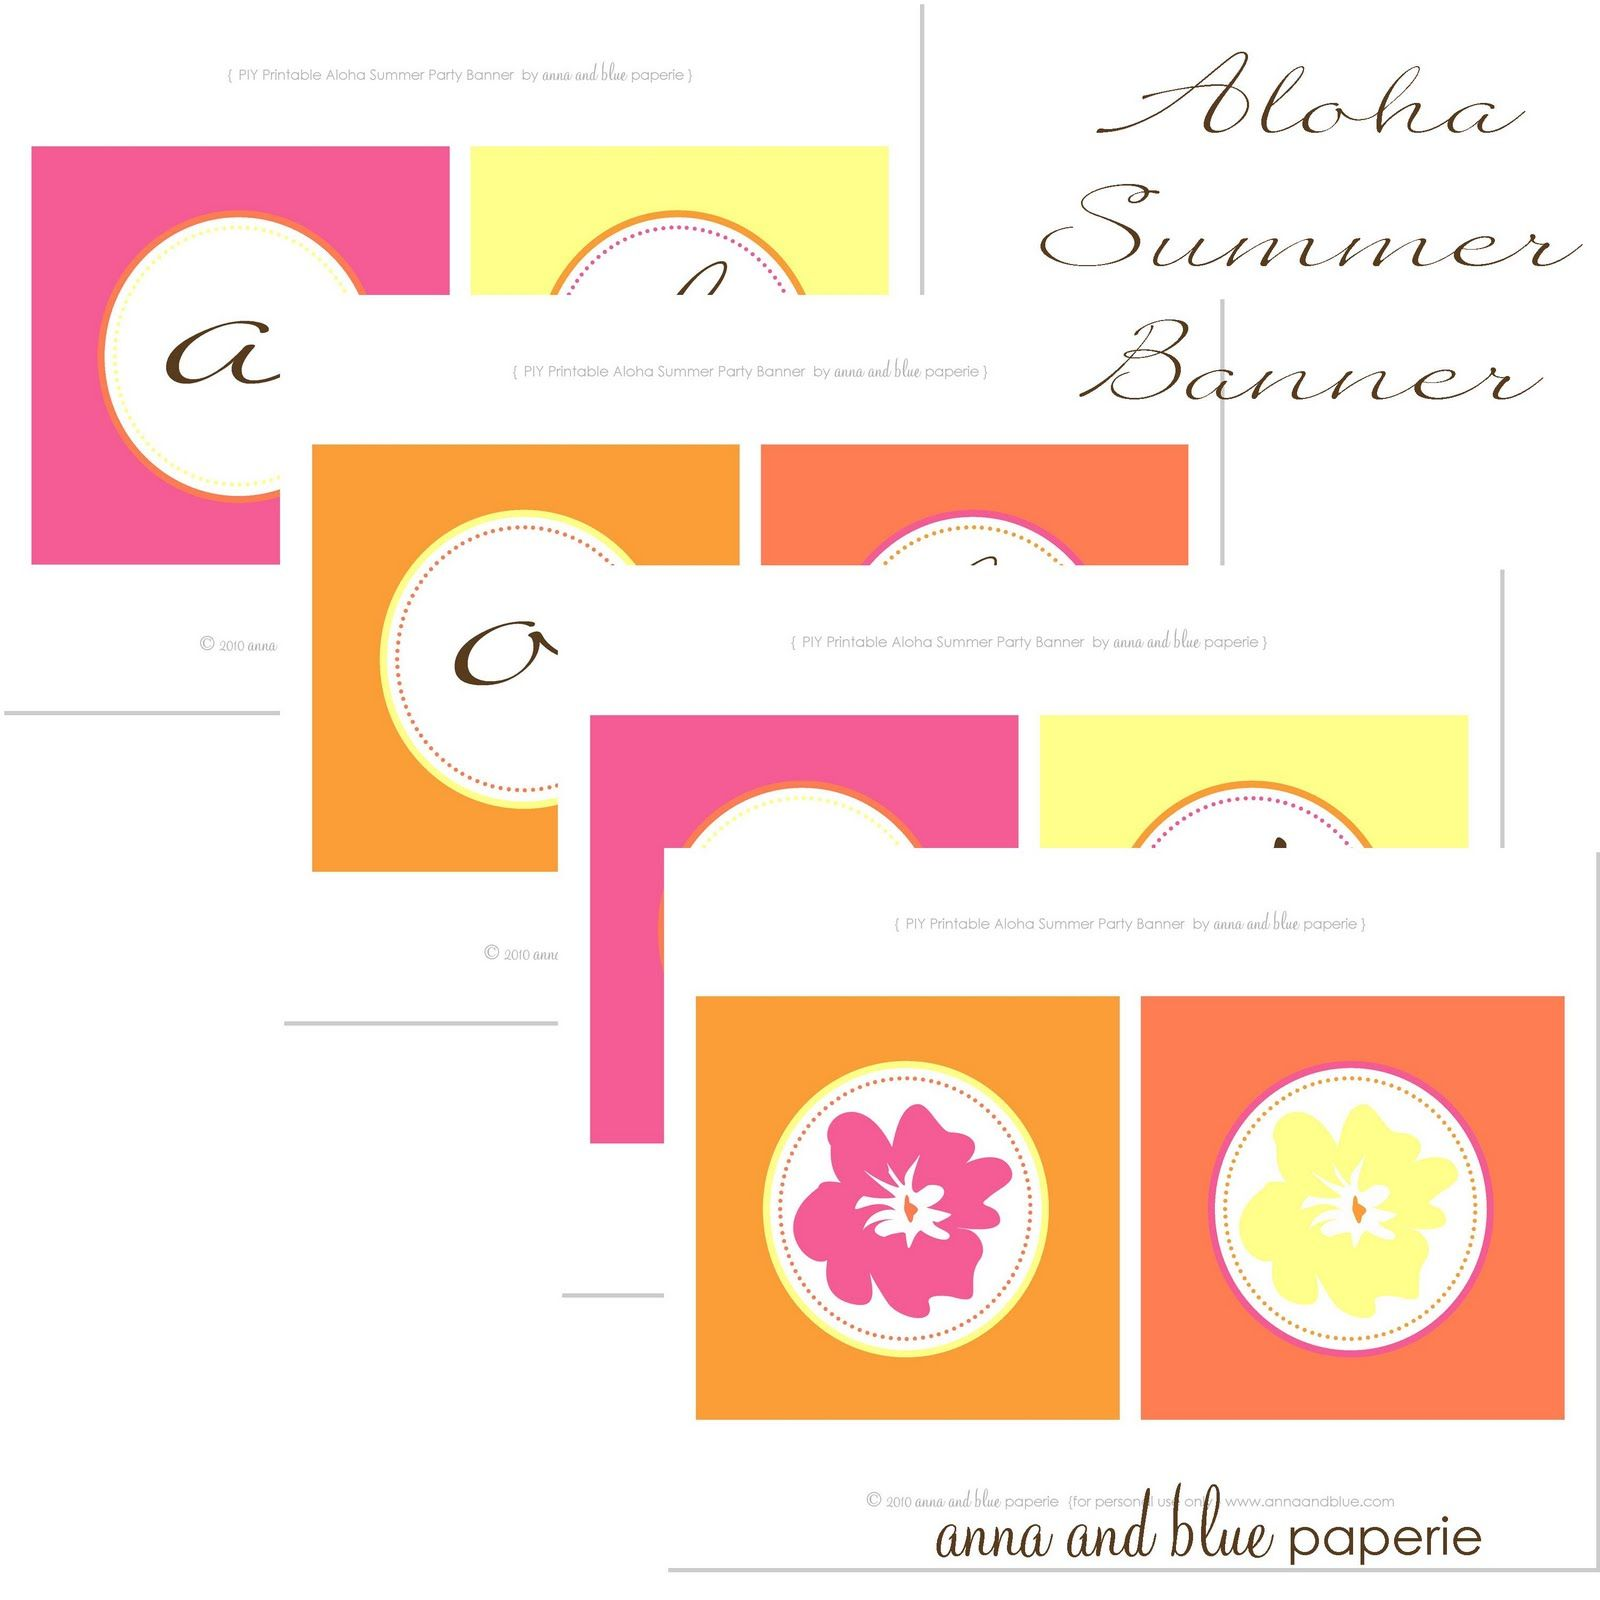 anna and blue paperie: Aloha Summer Party Details & FREE Printable!